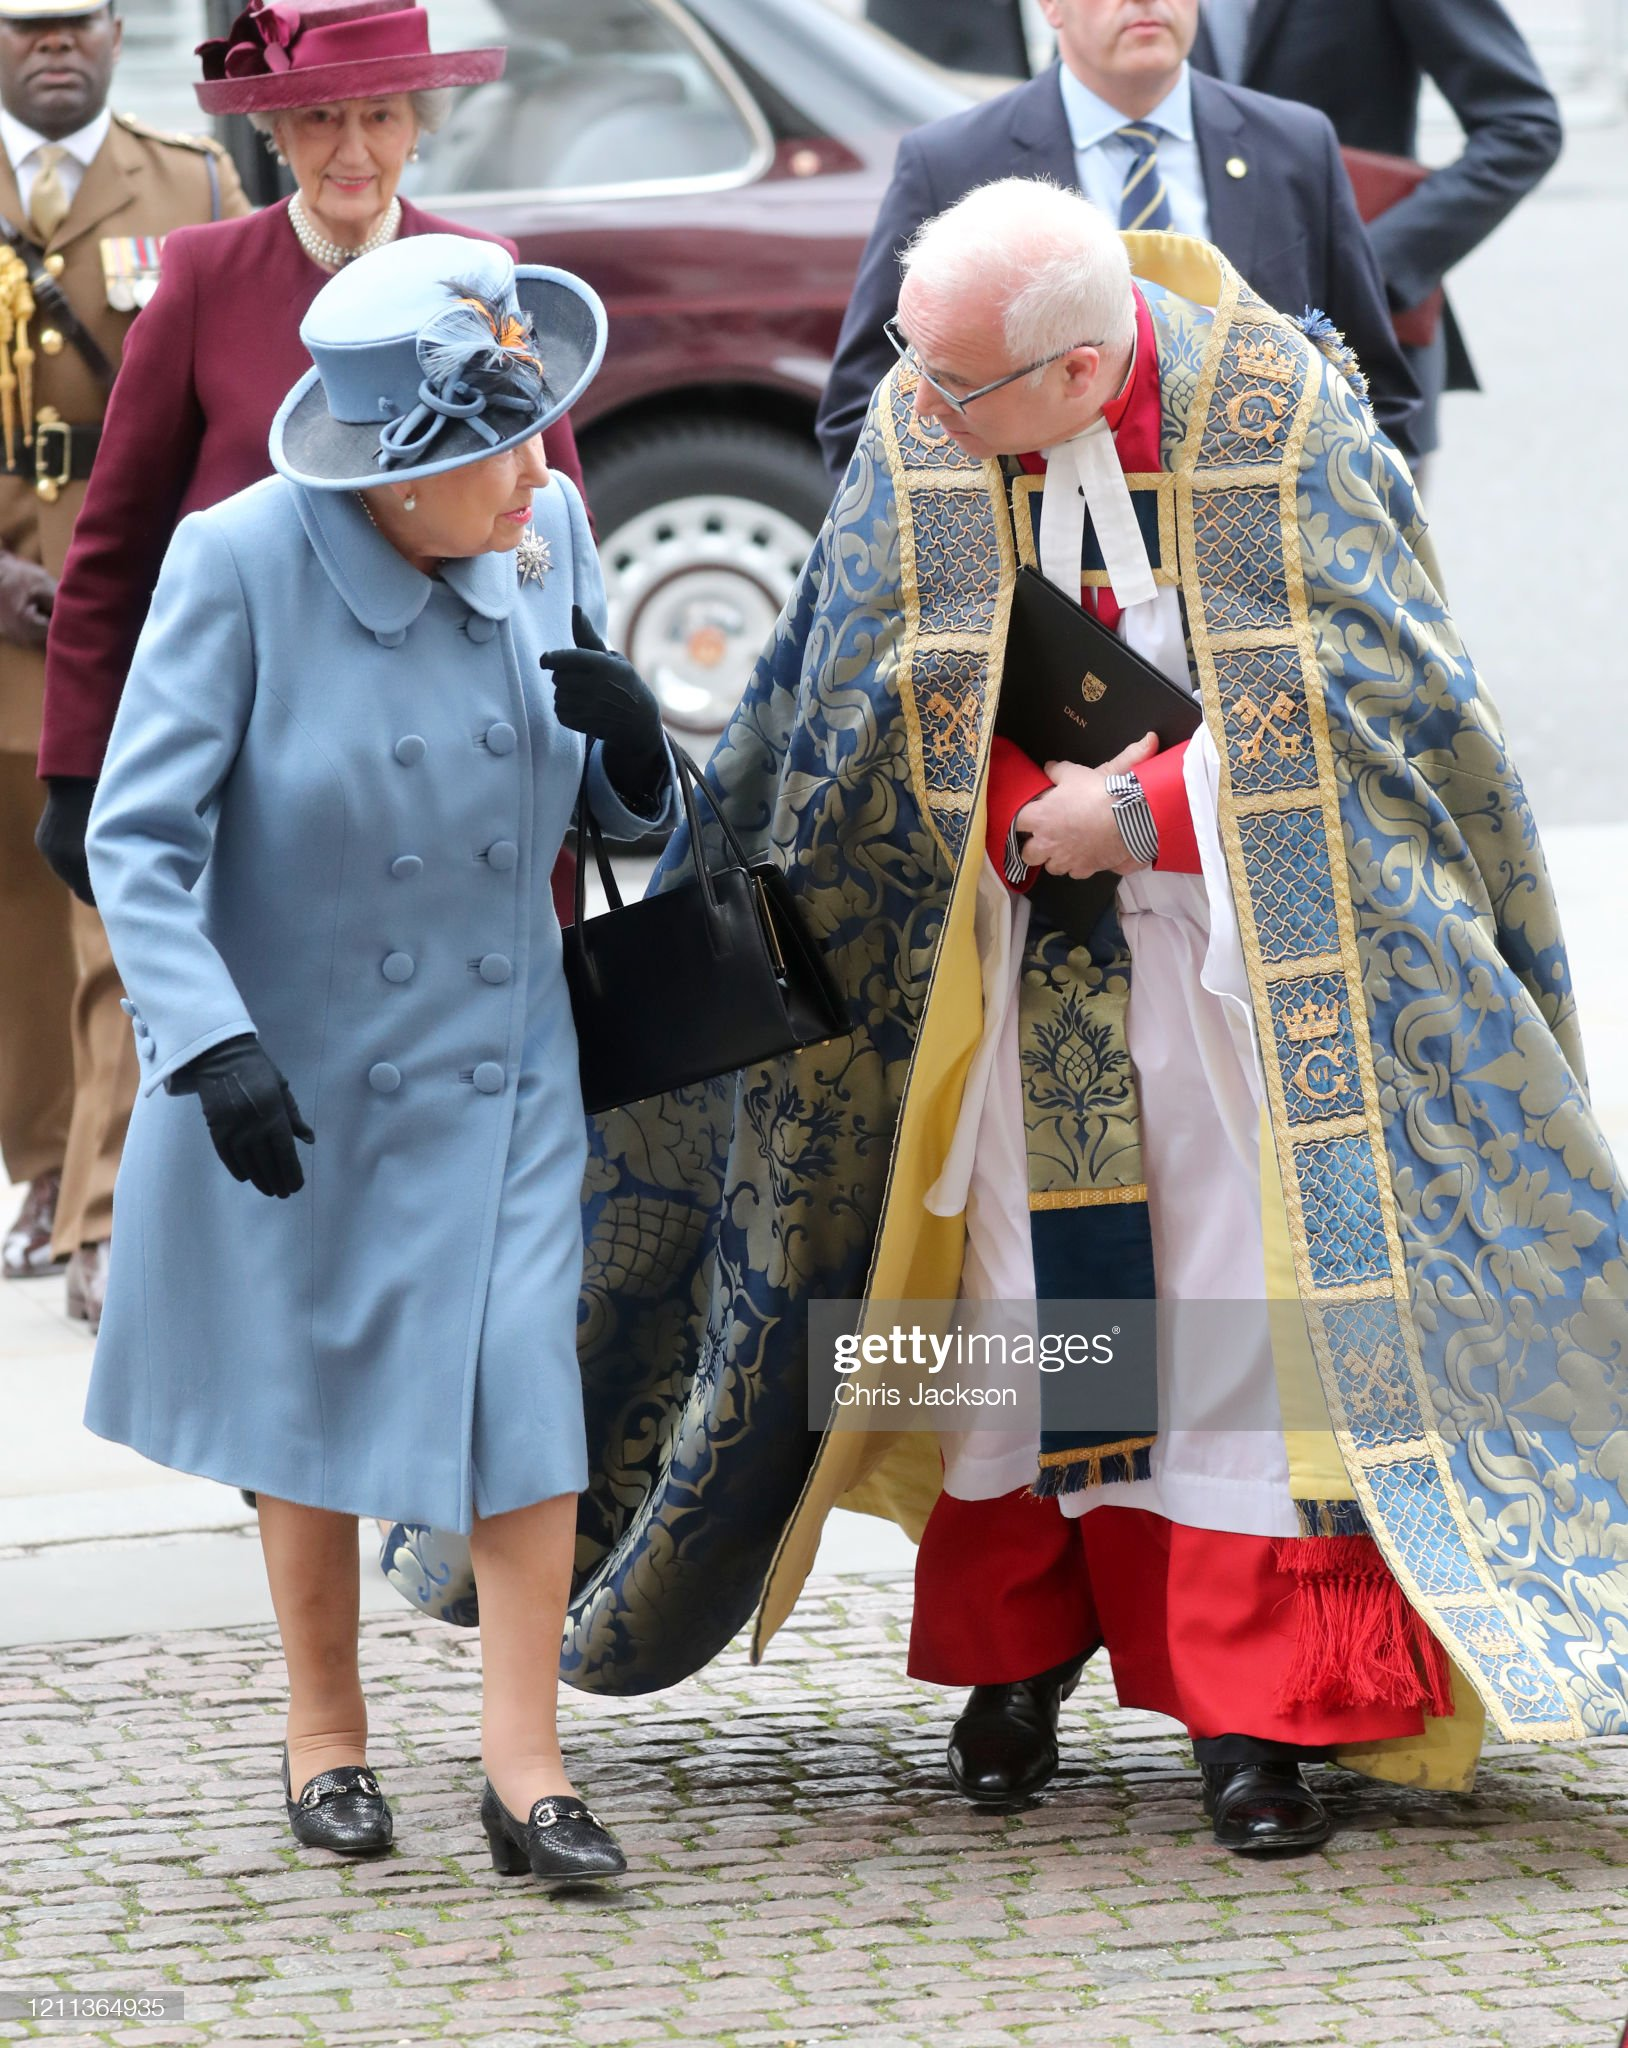 https://media.gettyimages.com/photos/queen-elizabeth-ii-attends-the-commonwealth-day-service-2020-at-on-picture-id1211364935?s=2048x2048